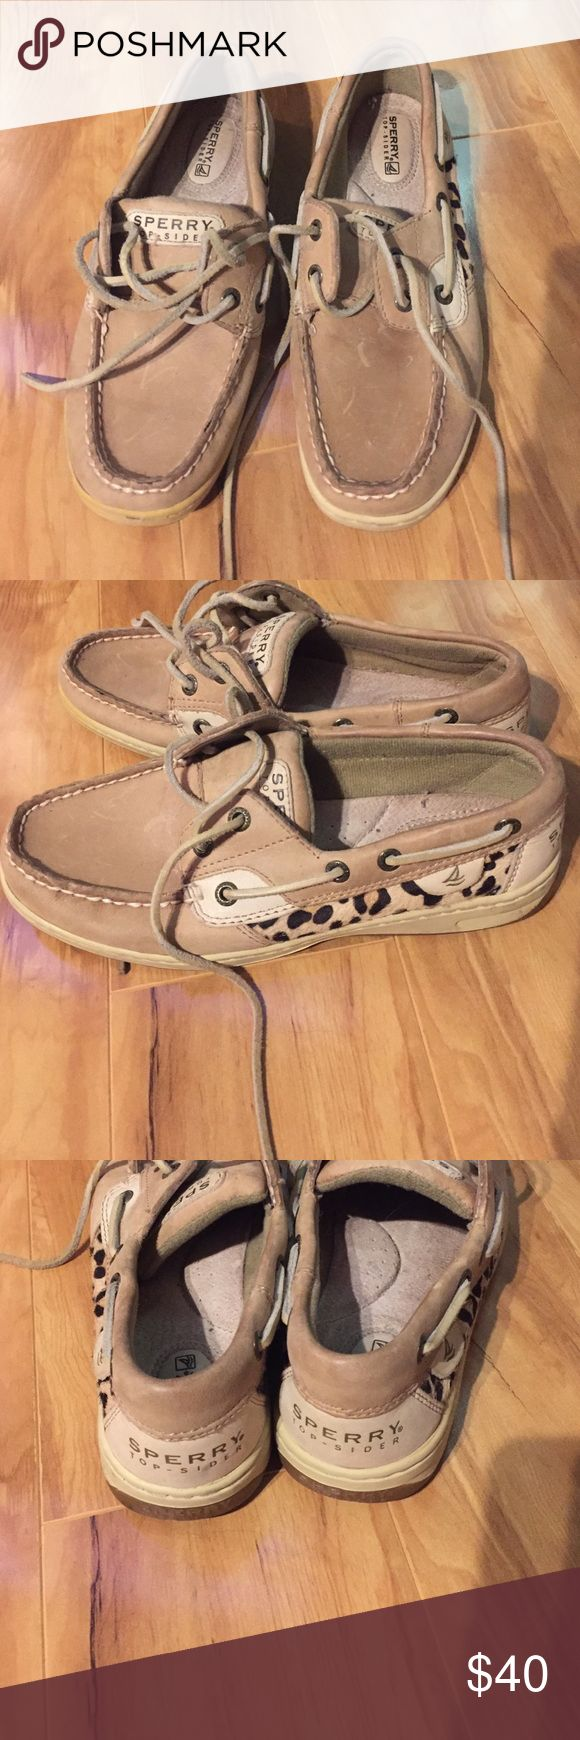 Sperry Topsider ⛄bf sale Animal print sperrys. Size 6. Good condition. Little scratches on the front. Sperry Top-Sider Shoes